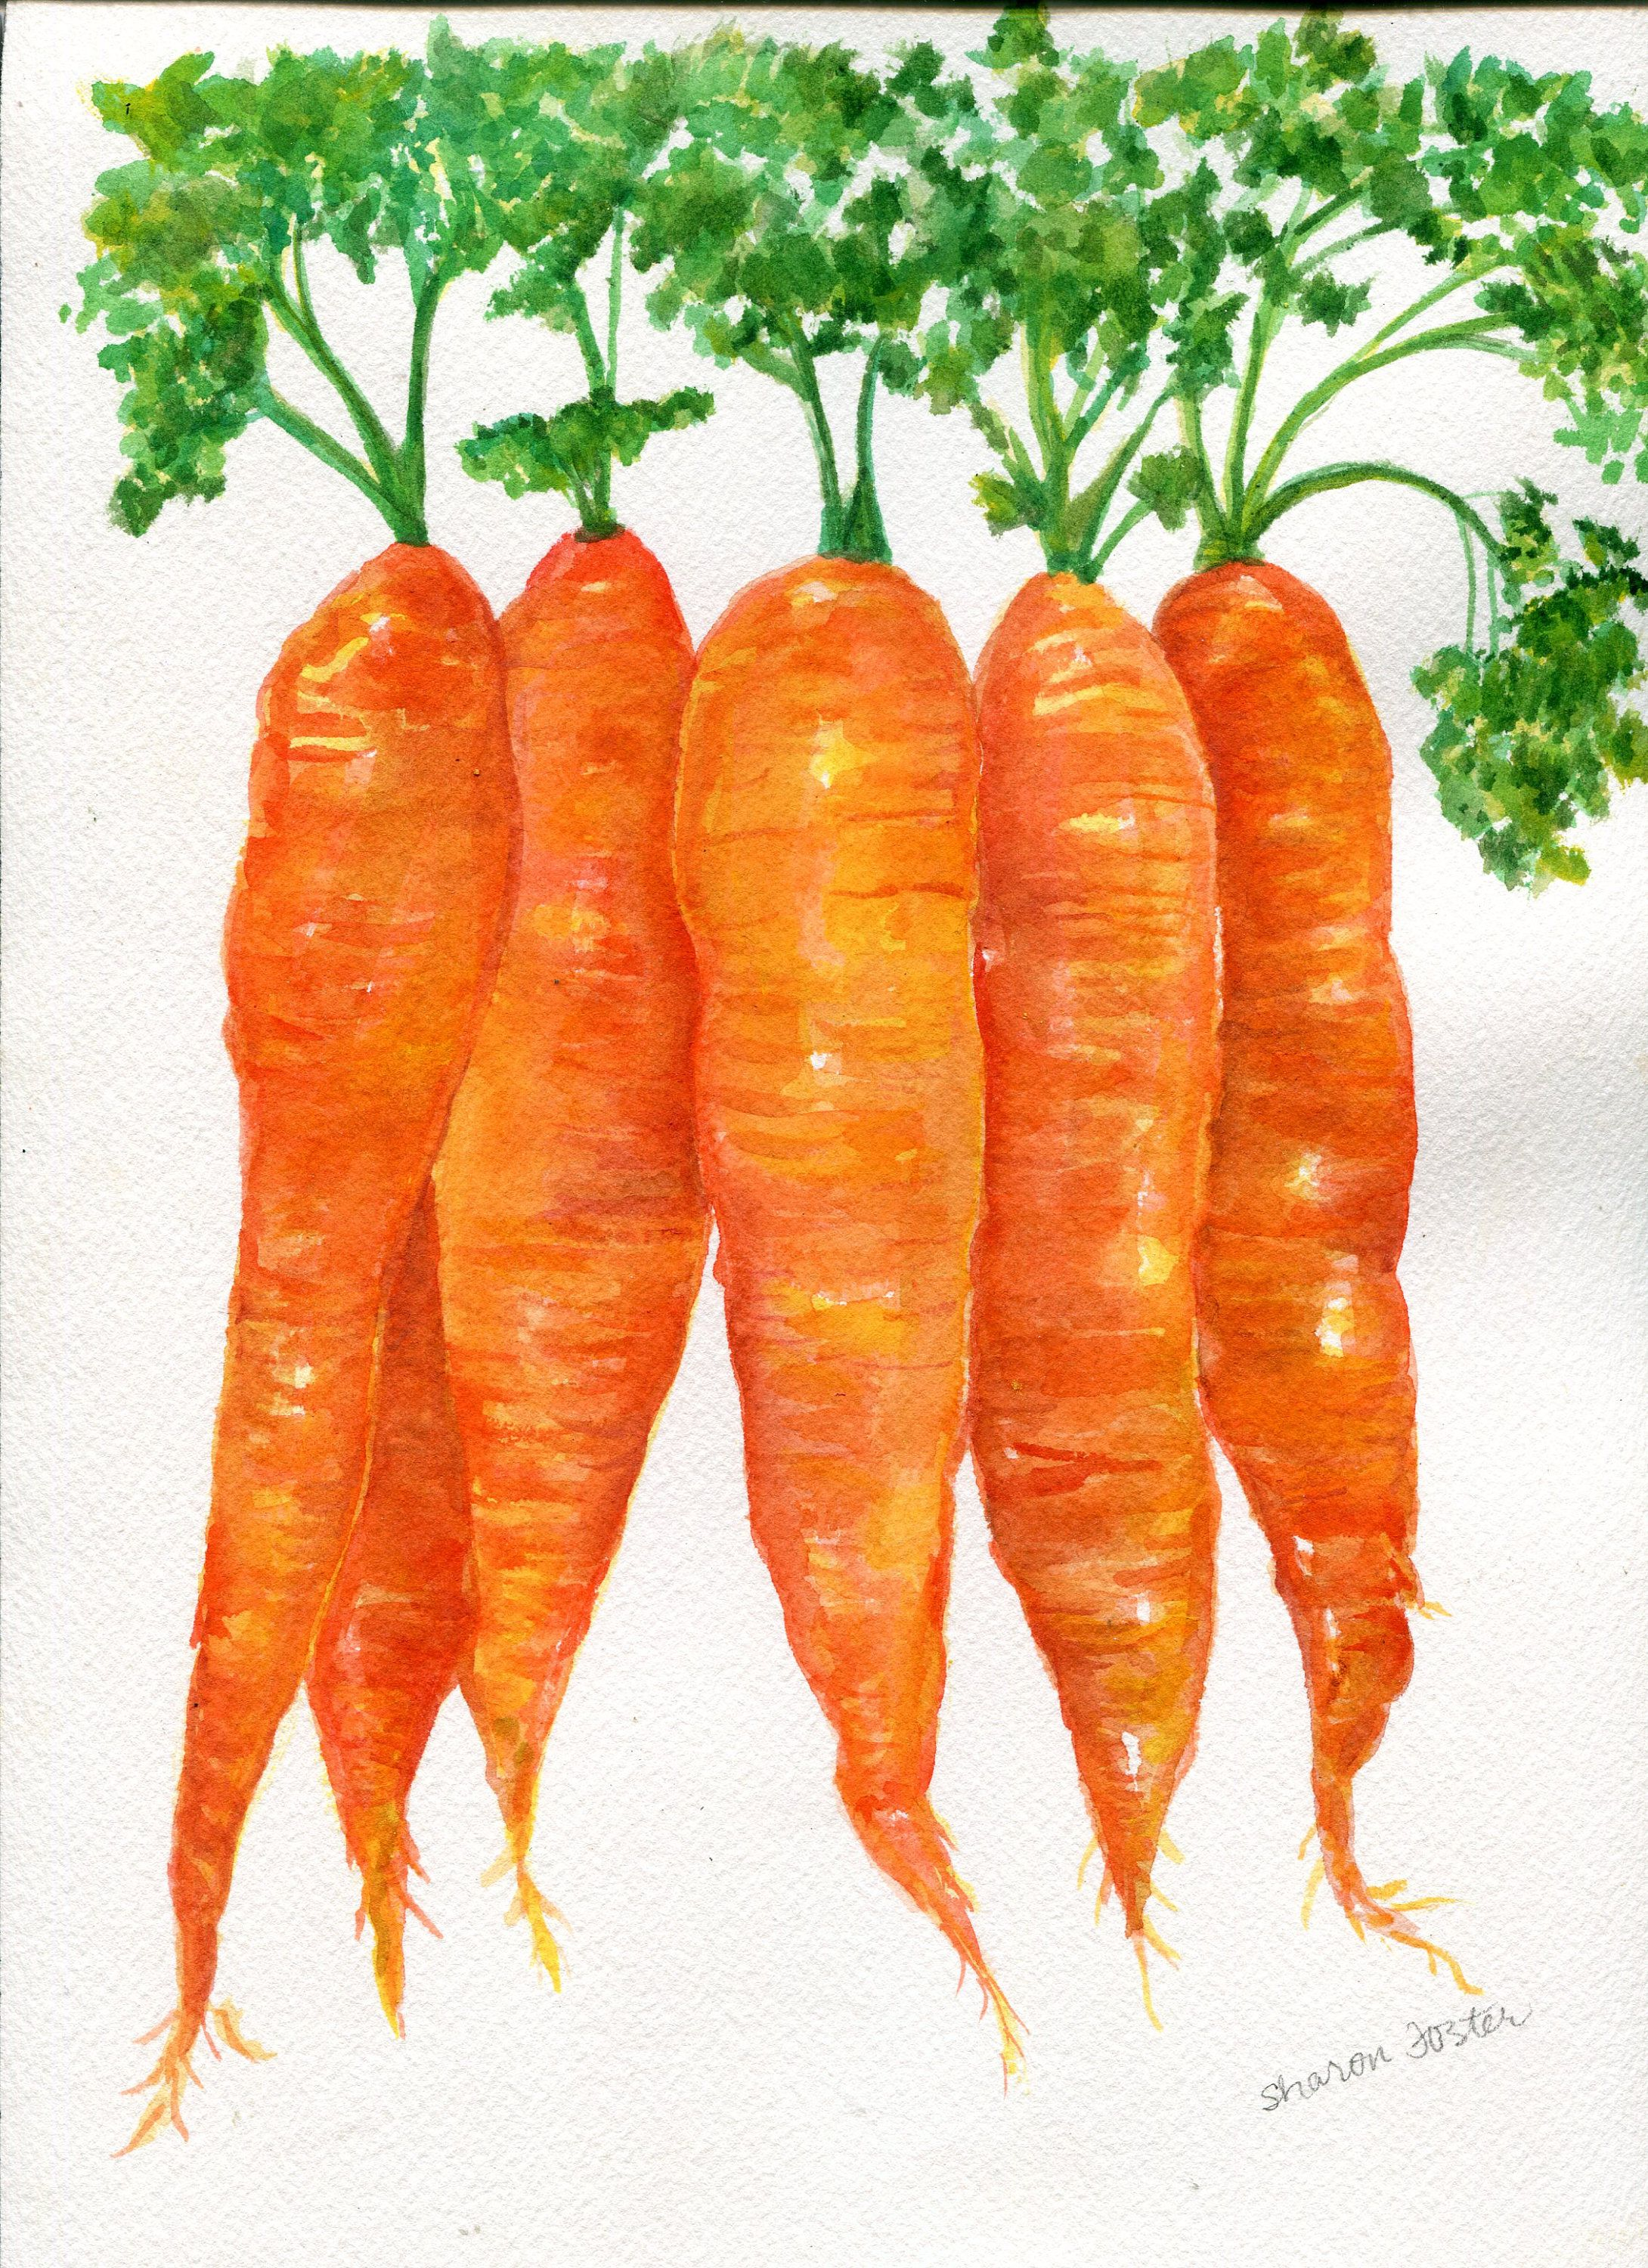 Carrots Watercolor Painting Original Vegetables 9 X 12 Original Watercolor Painting Bunch Carrots S Vegetable Drawing Original Paintings Watercolor Paintings The way certain watercolors provoke emotion. carrots watercolor painting original